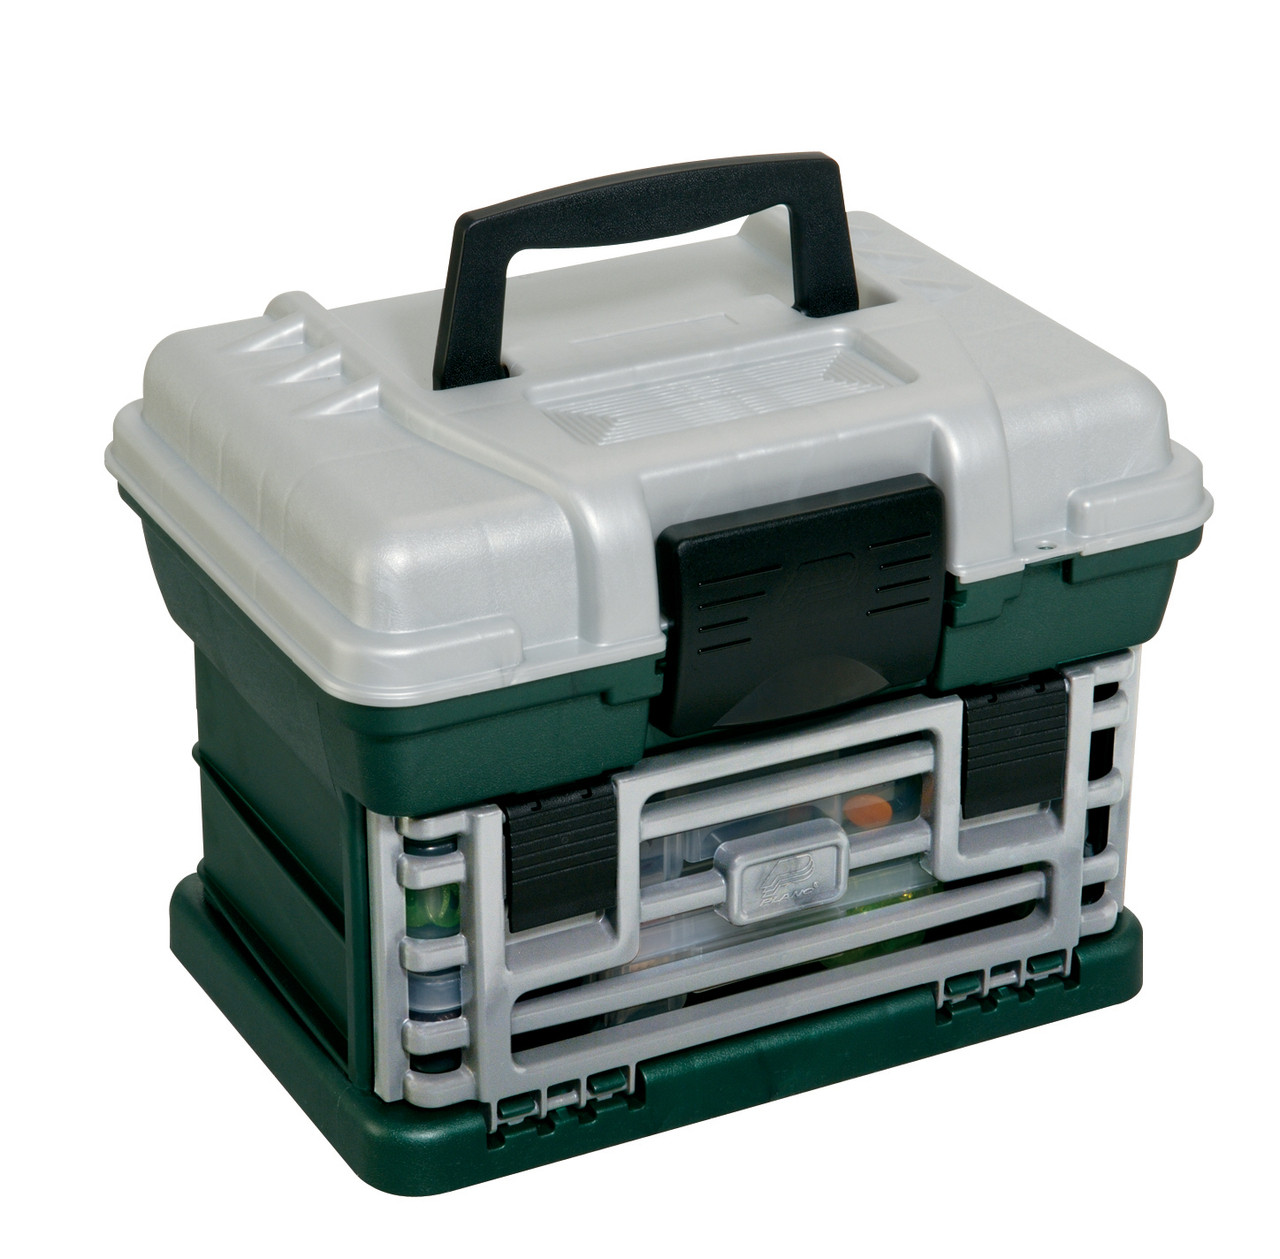 Plano 1362 tackle box fishing tackle storage system for Plano fishing tackle boxes